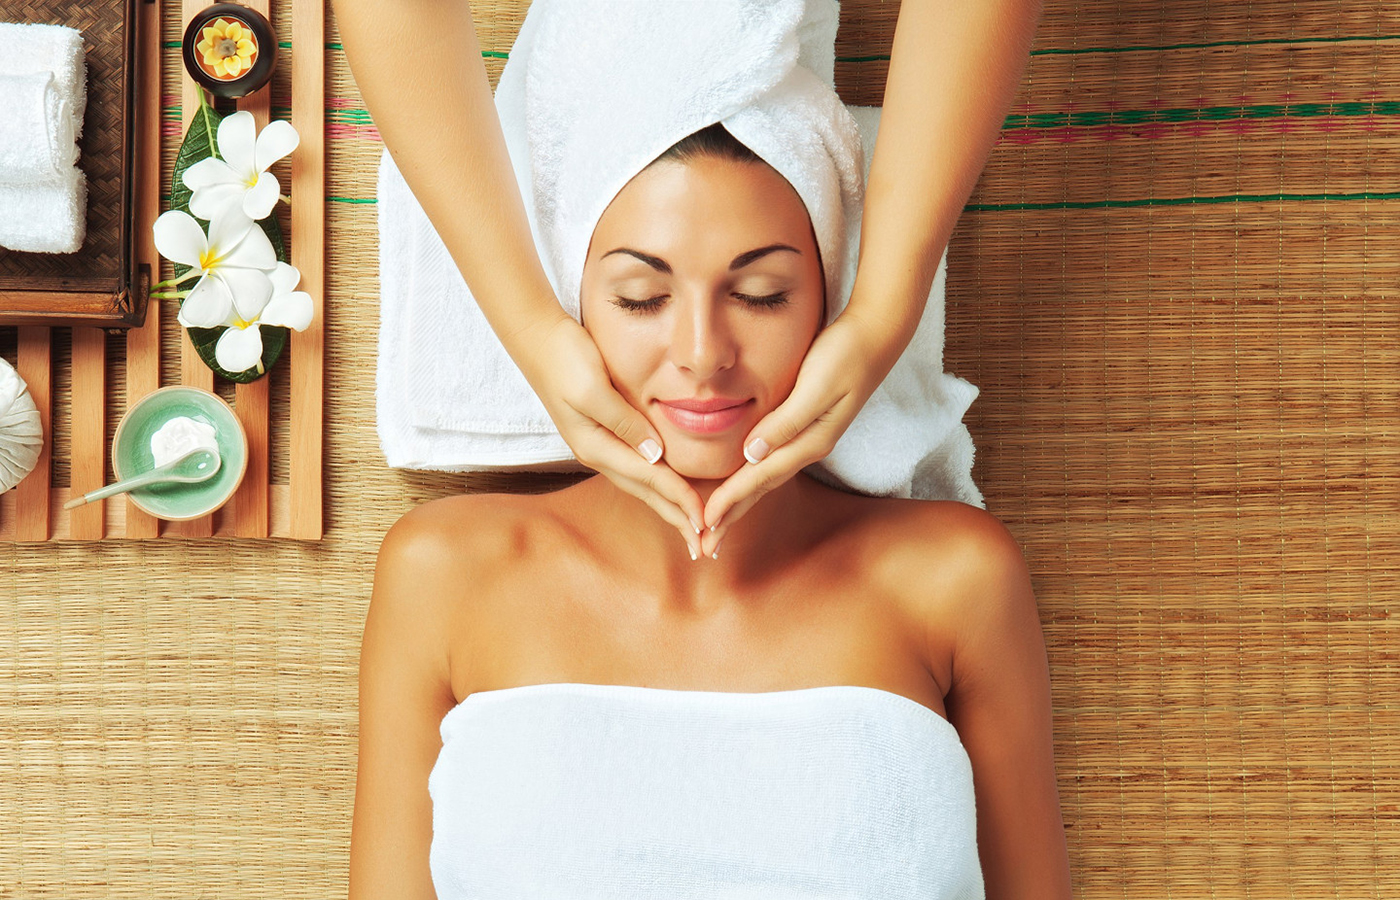 Enter Here to WIN A Spa Package at A Moment's Peace Salon